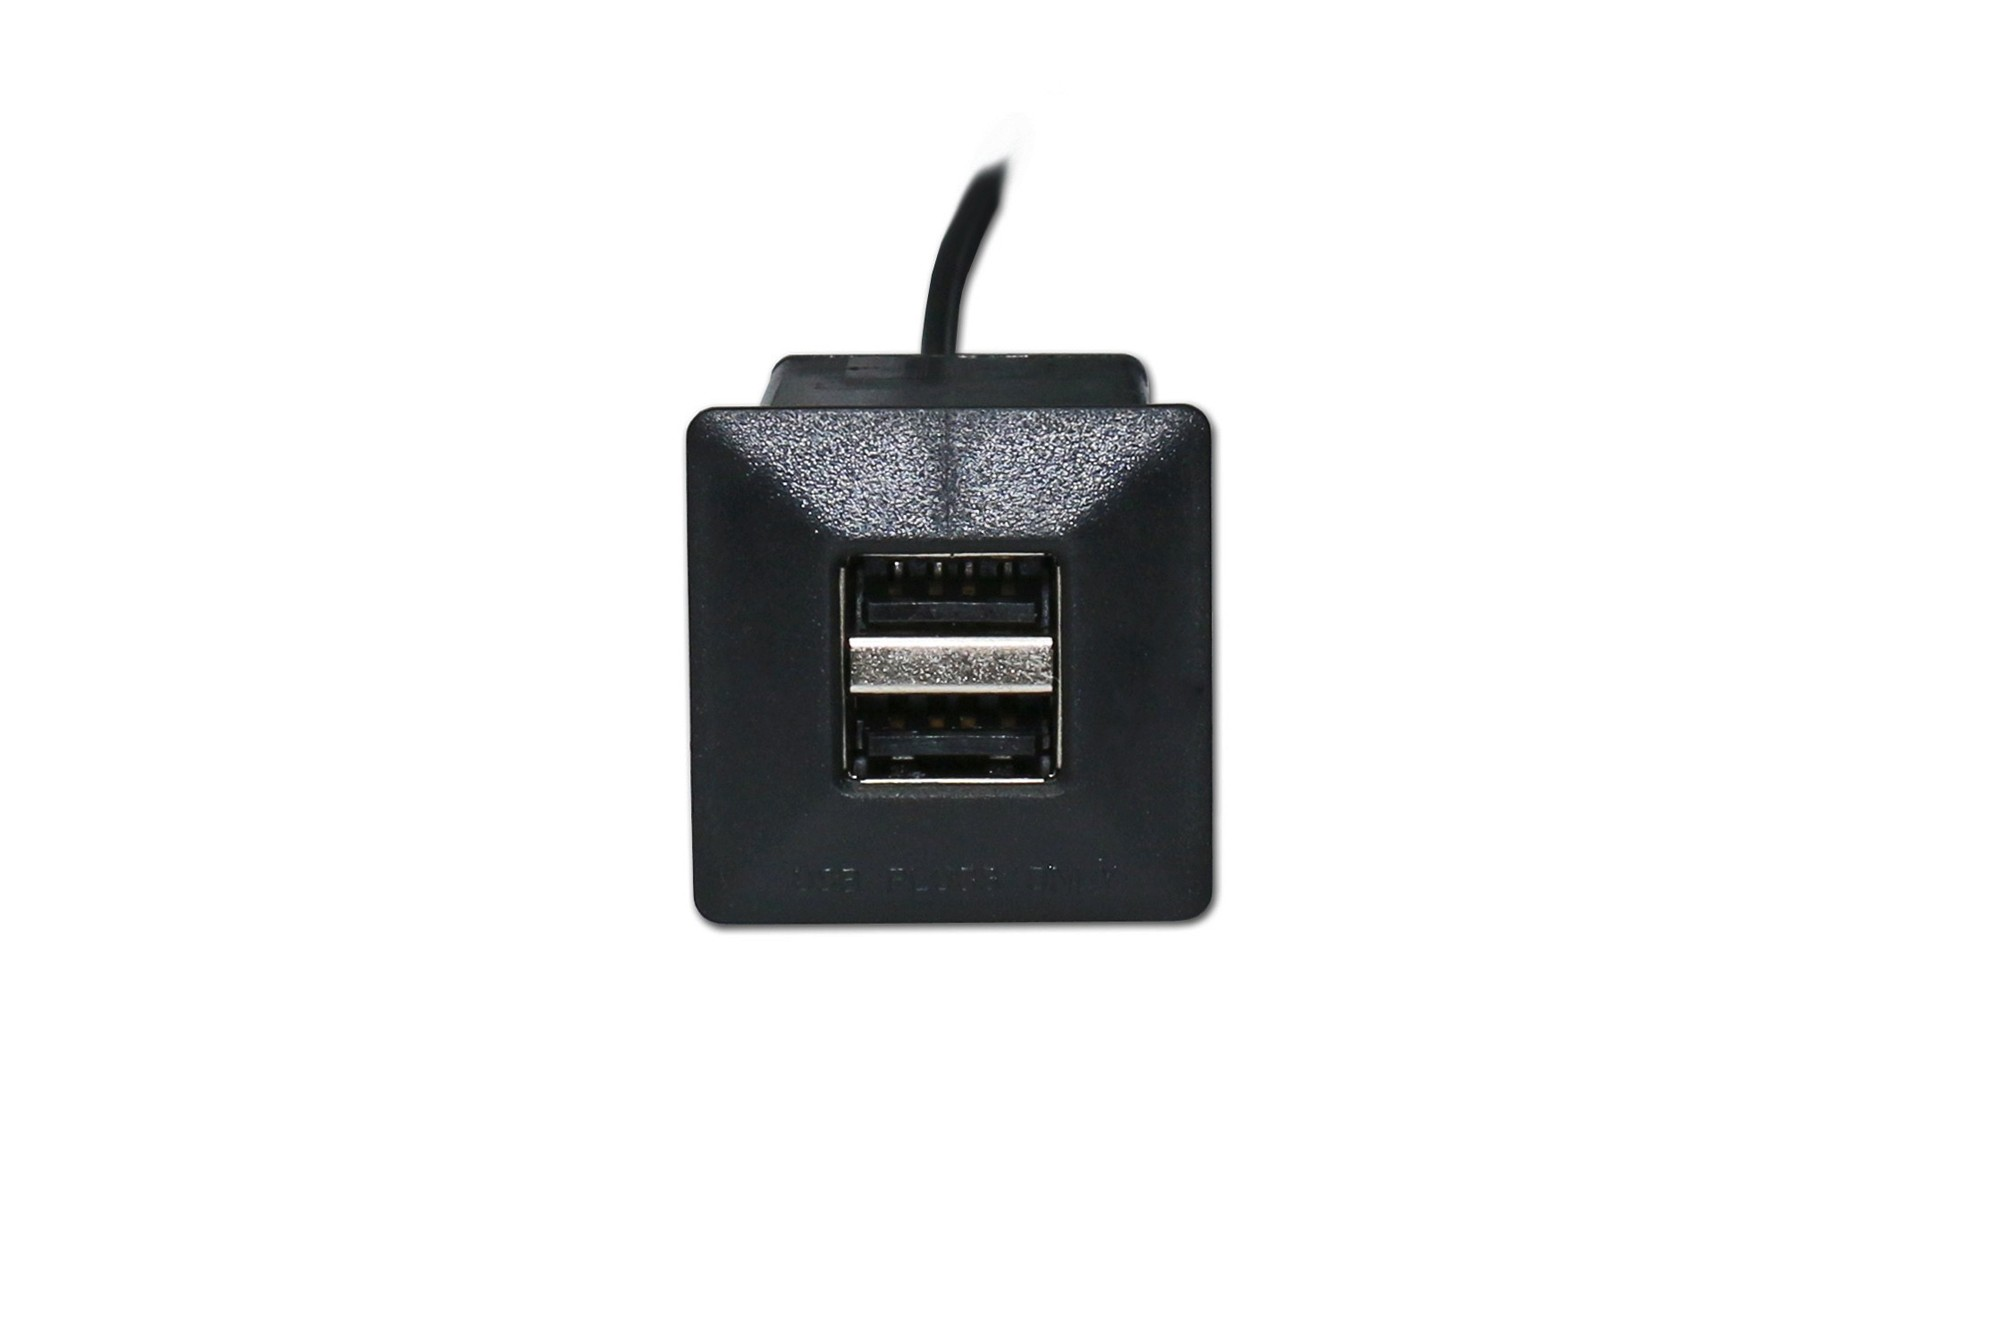 Dual USB charger, mini square with barrel connector